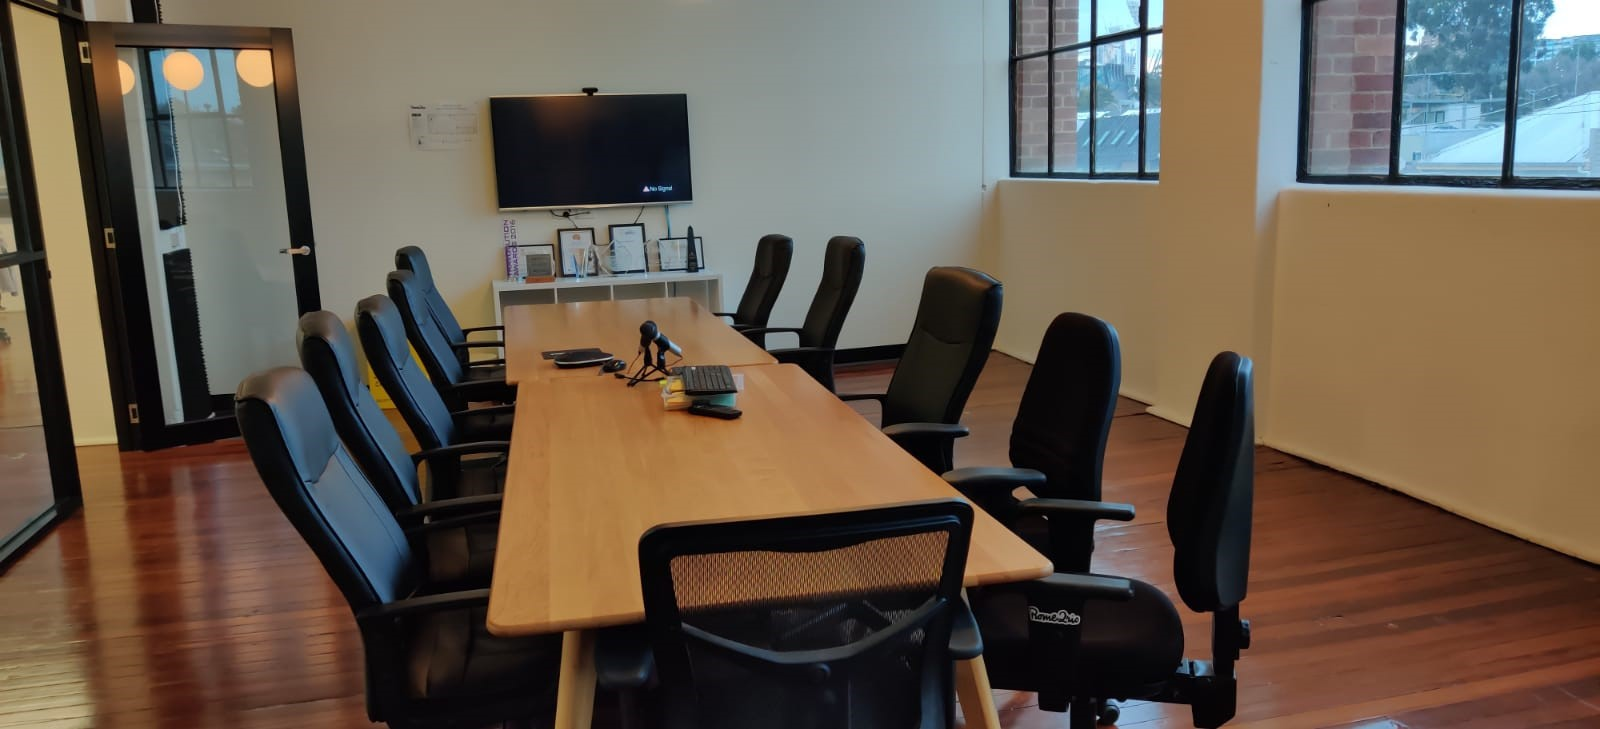 Online Meeting Room cleaning services